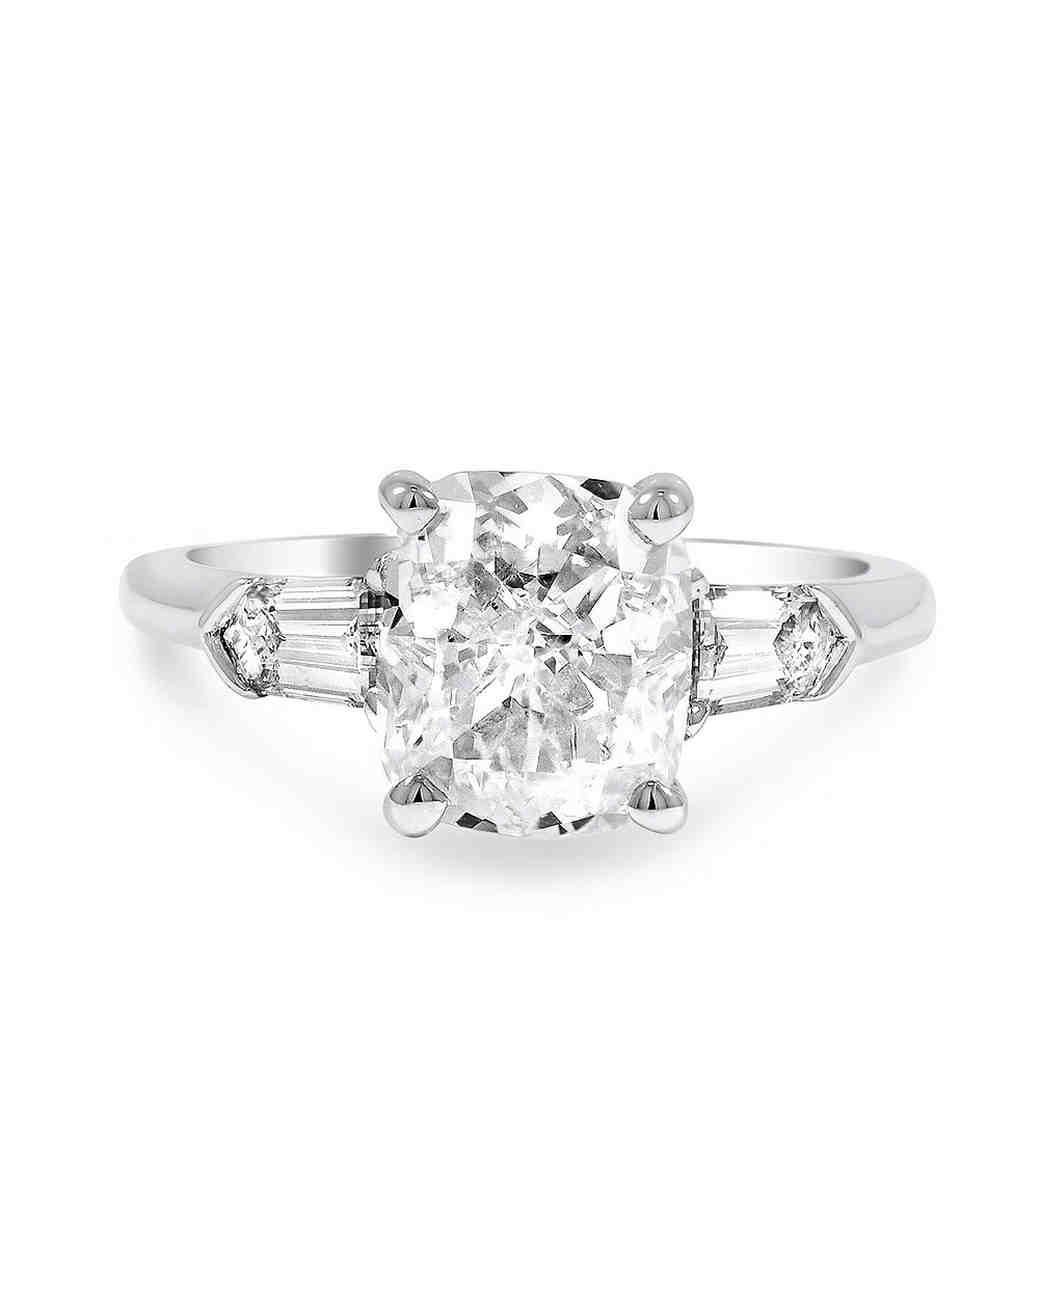 Brilliant Earth The Beloved Ring Cushion-Cut Diamond with Baguette Diamonds on side